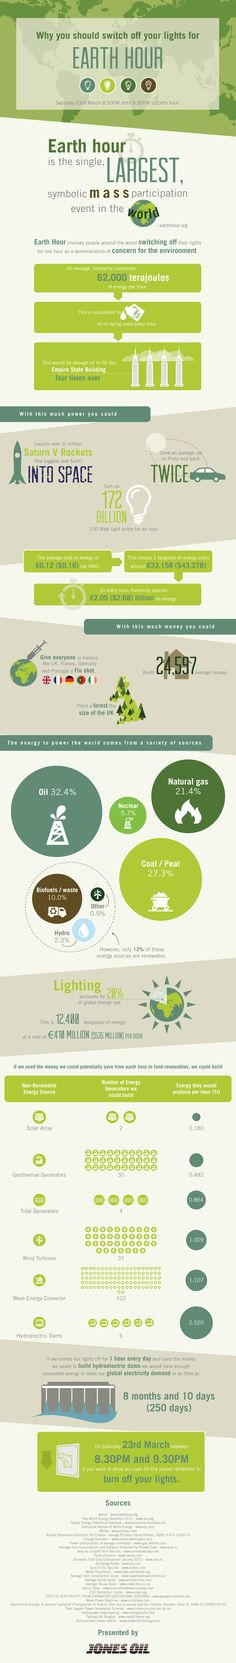 Did you know that #humans consume 62,000 terajoules of #energy PER HOUR?  That does that mean?  It is equivalent to 1.48 MILLION TONS of oil being used every hour! This is enough OIL TO FILL the Empire State Building 4 times! Great inforgraphic from earthhour.org why-you-should-switch-your-lights-off-for-earth-hour-infographic-infographic